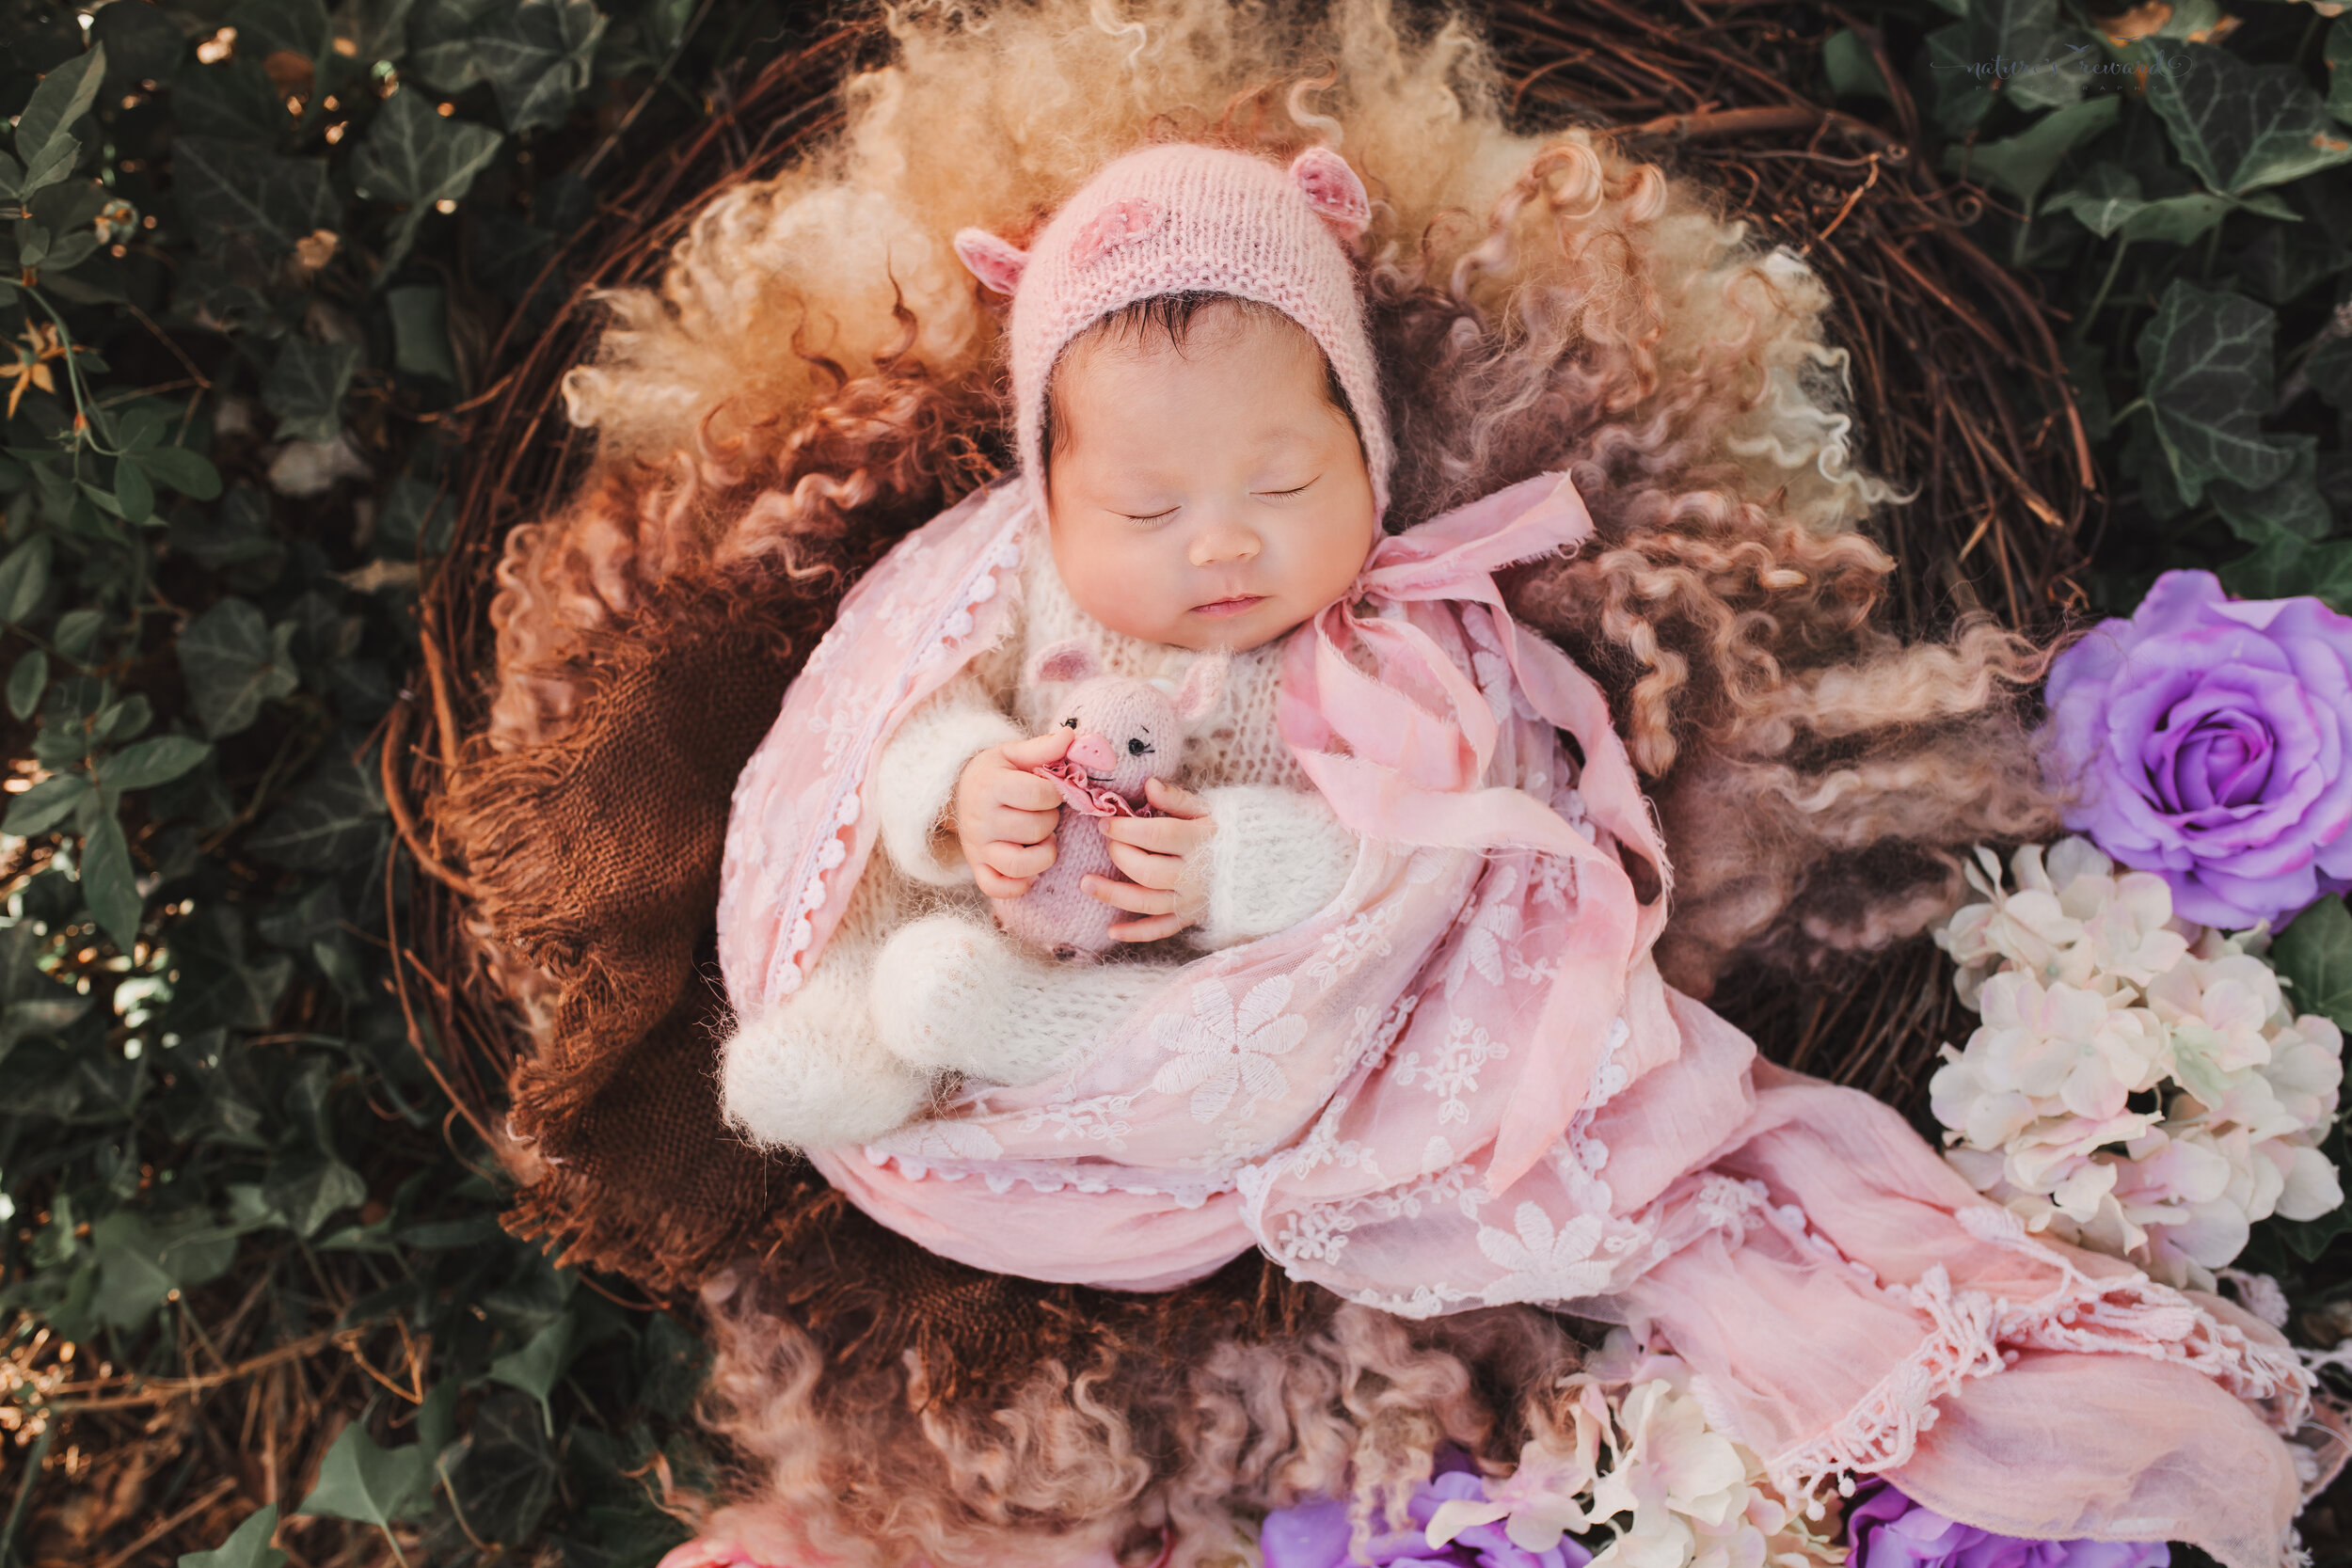 Newborn Baby girl in a pink swaddle wearing a piggy bonnet holding a pig (it's the year of the pig)  in a nest in a garden portrait by nature's Reward Photography